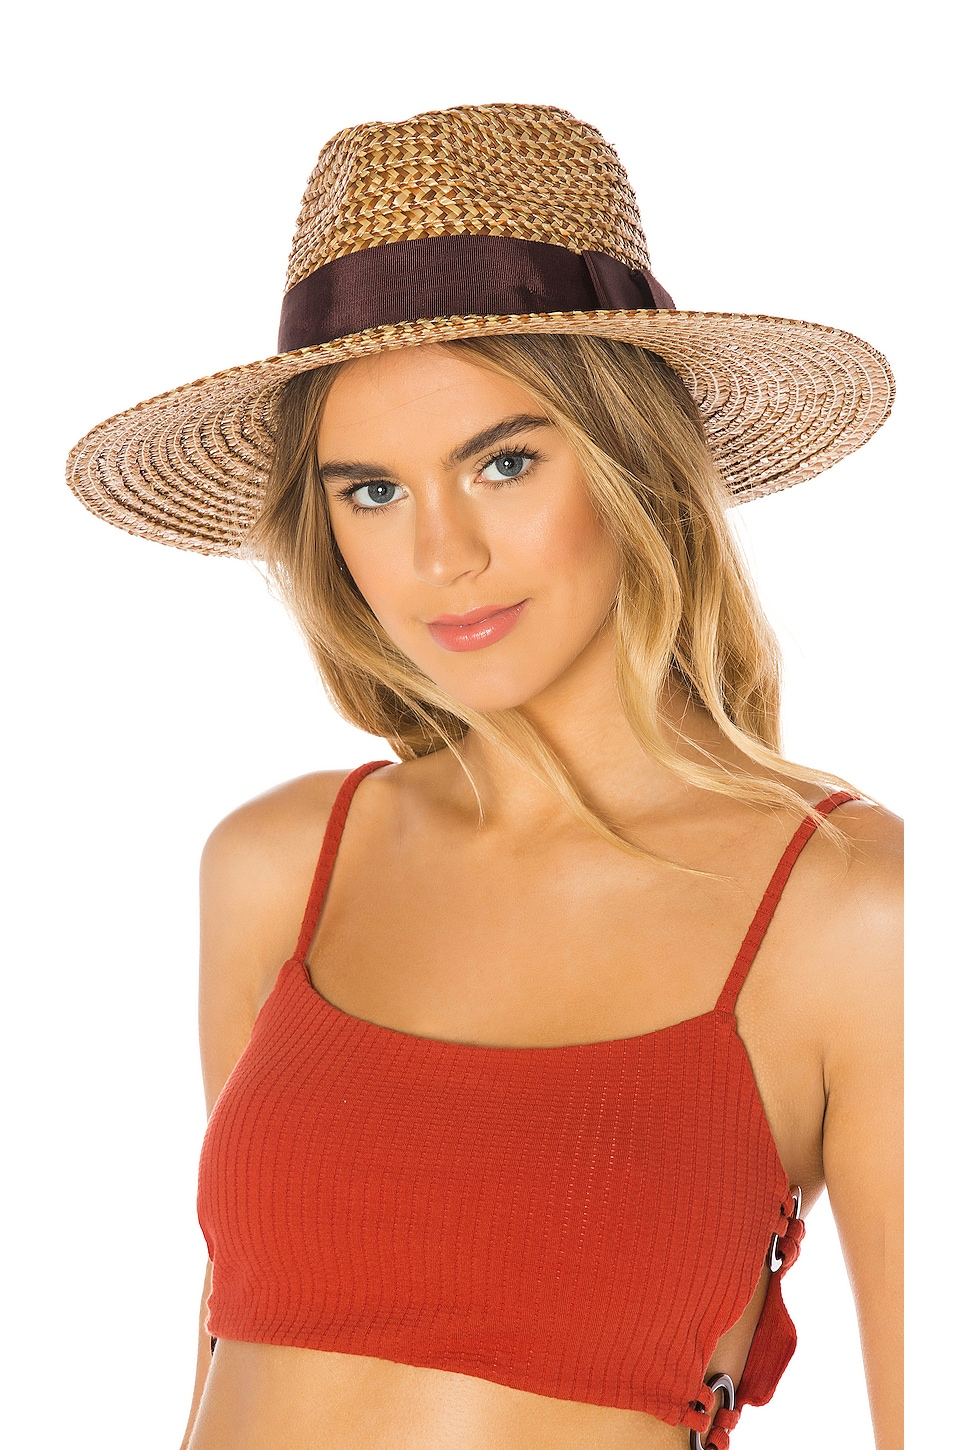 Brixton Joanna Hat in Brown & Cream